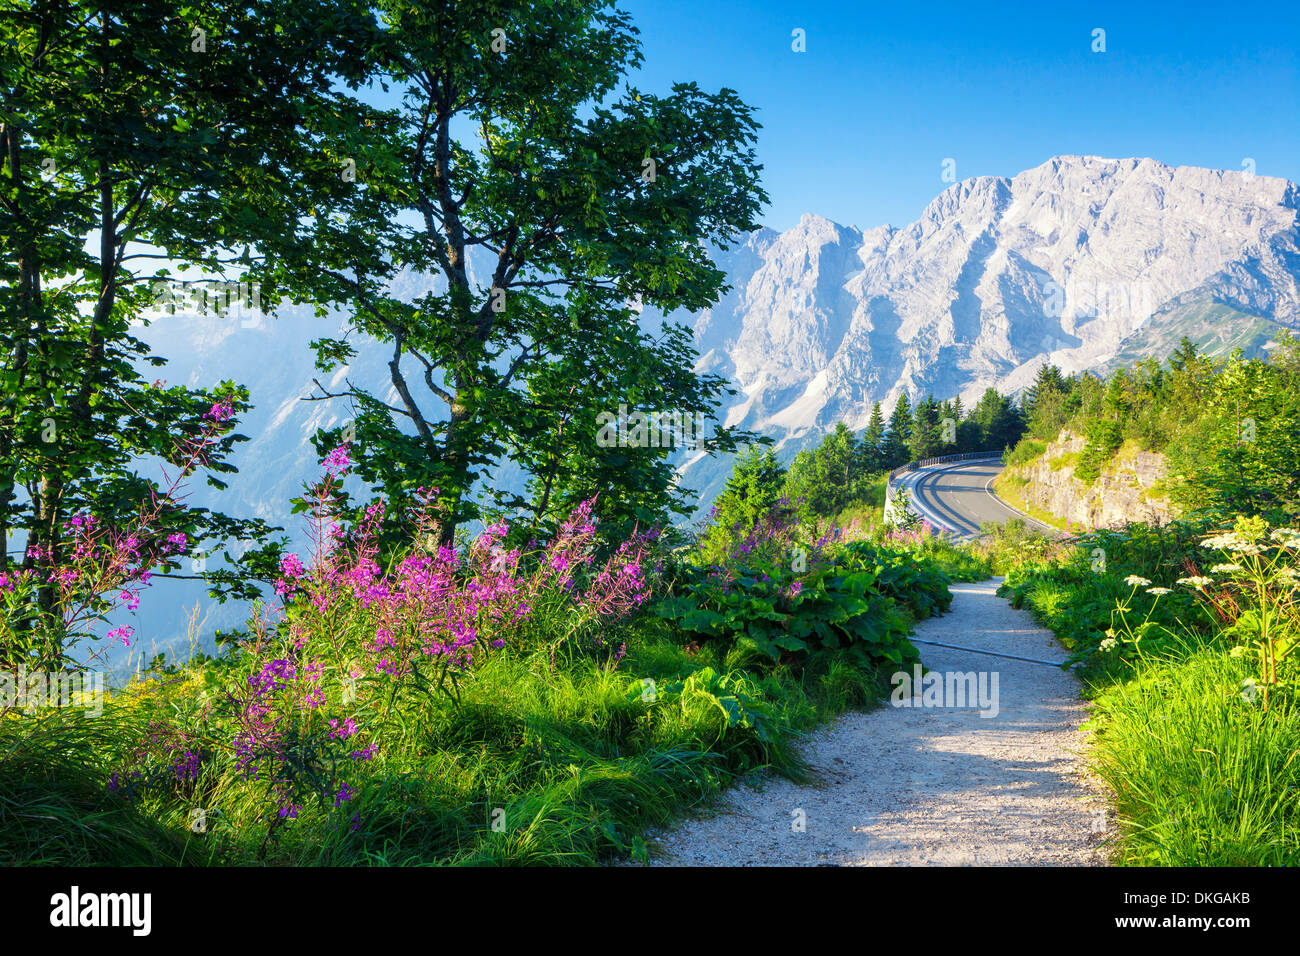 Mountain road in the Berchtesgaden Alps at the Hoher Goell, Bavaria, Germany Stock Photo